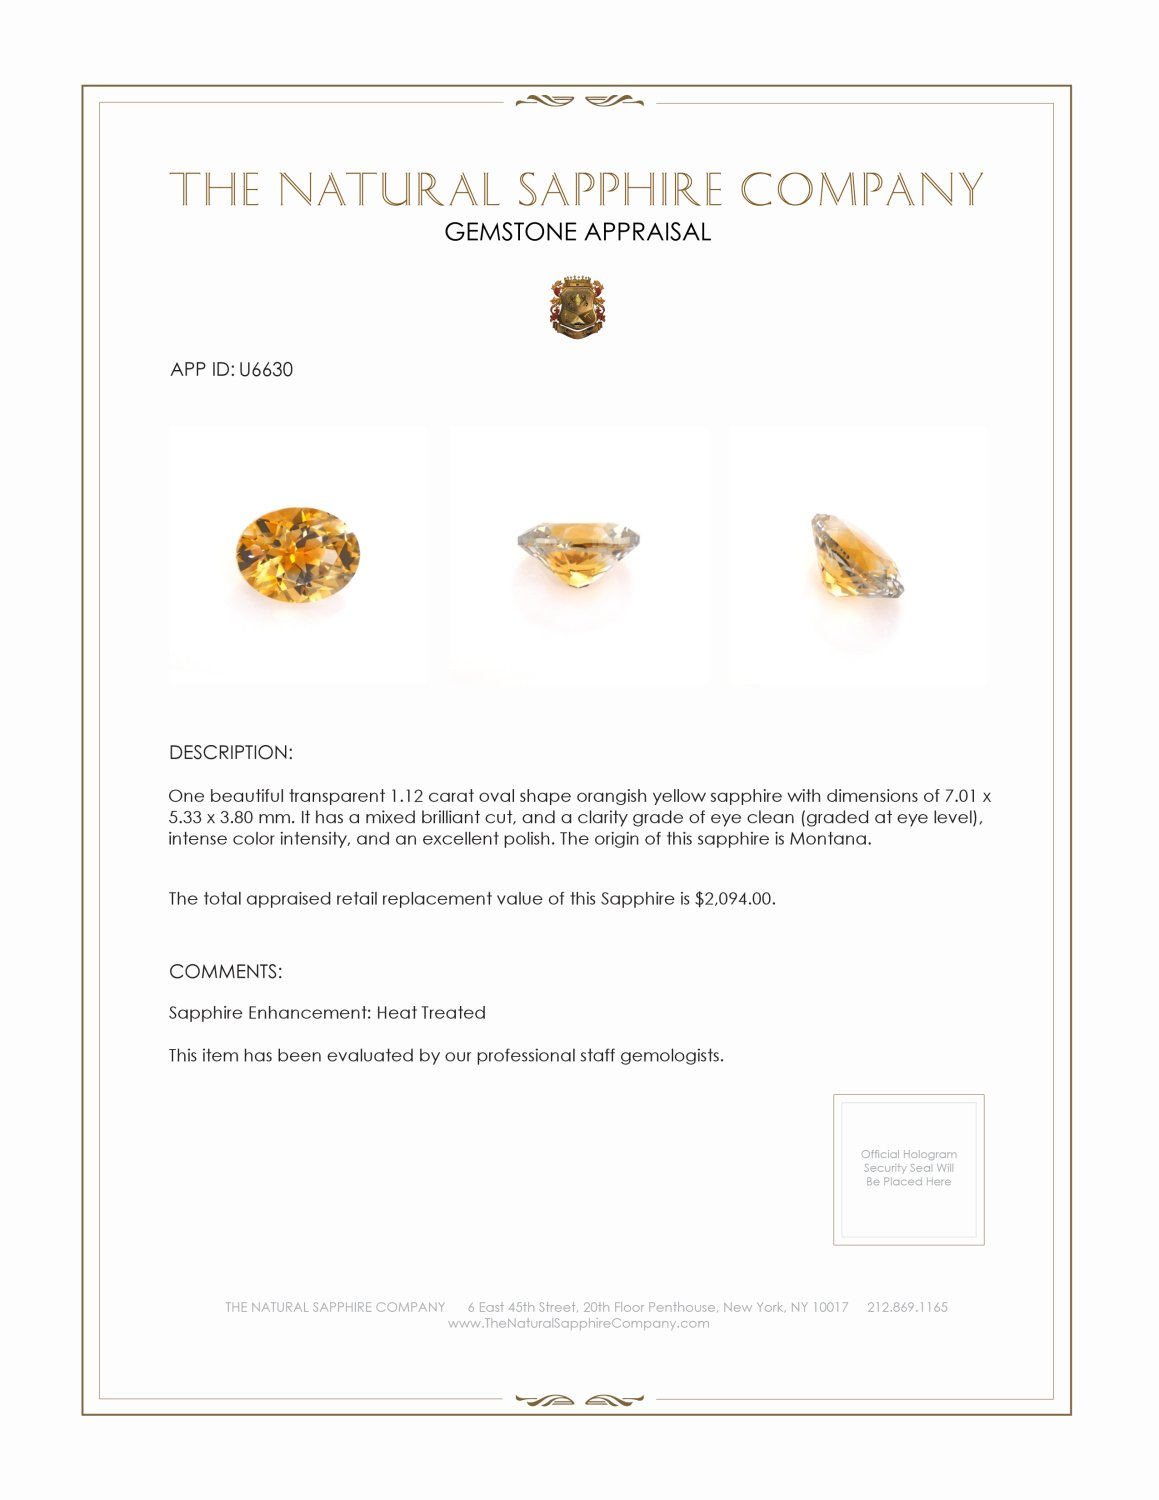 Natural Orangish Yellow Sapphire U6630 Certification 3